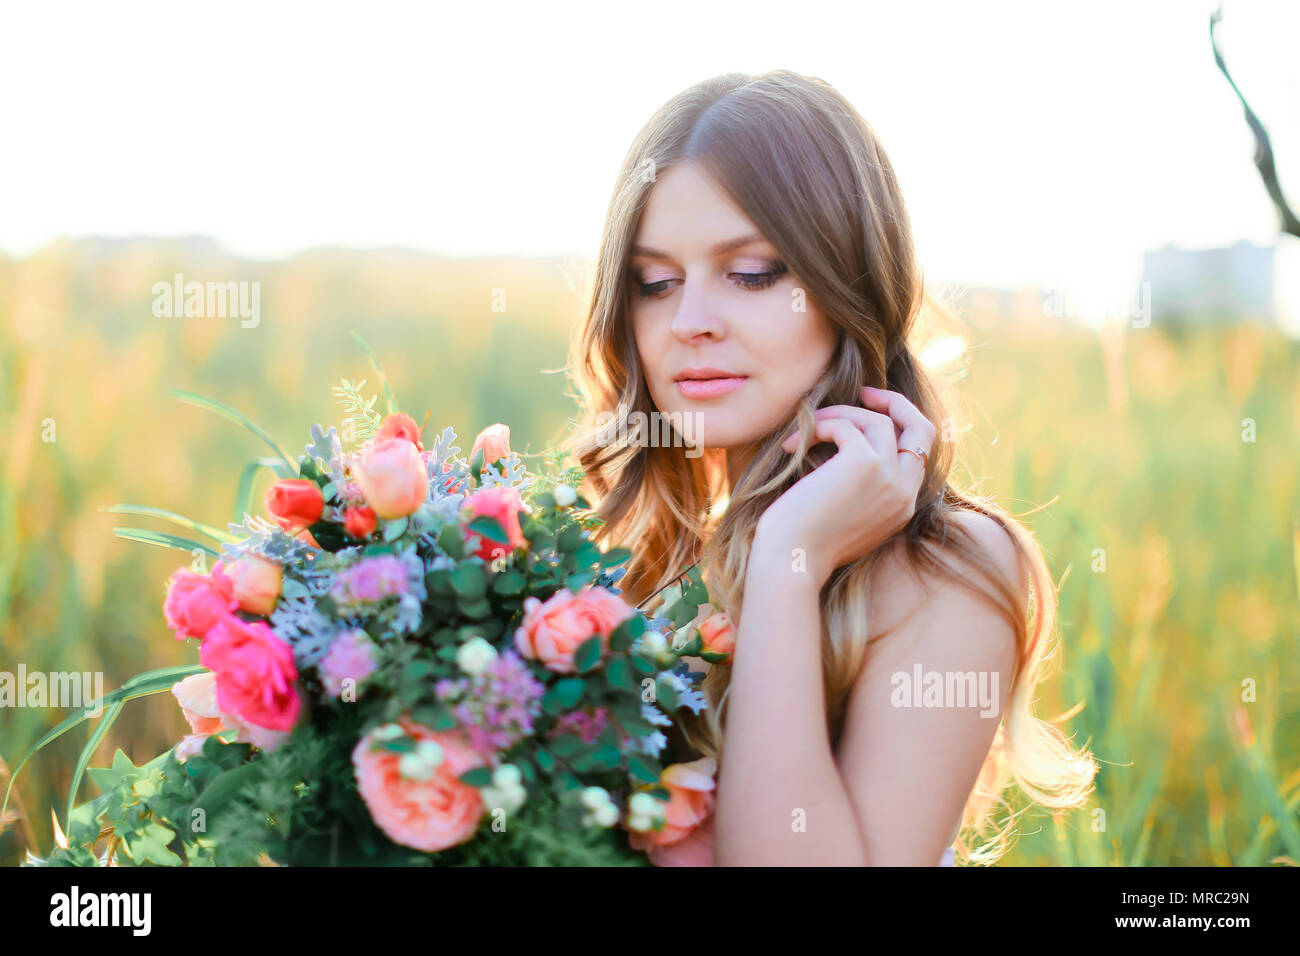 Young female person with bouquet of flowers standing in steppe background. Stock Photo